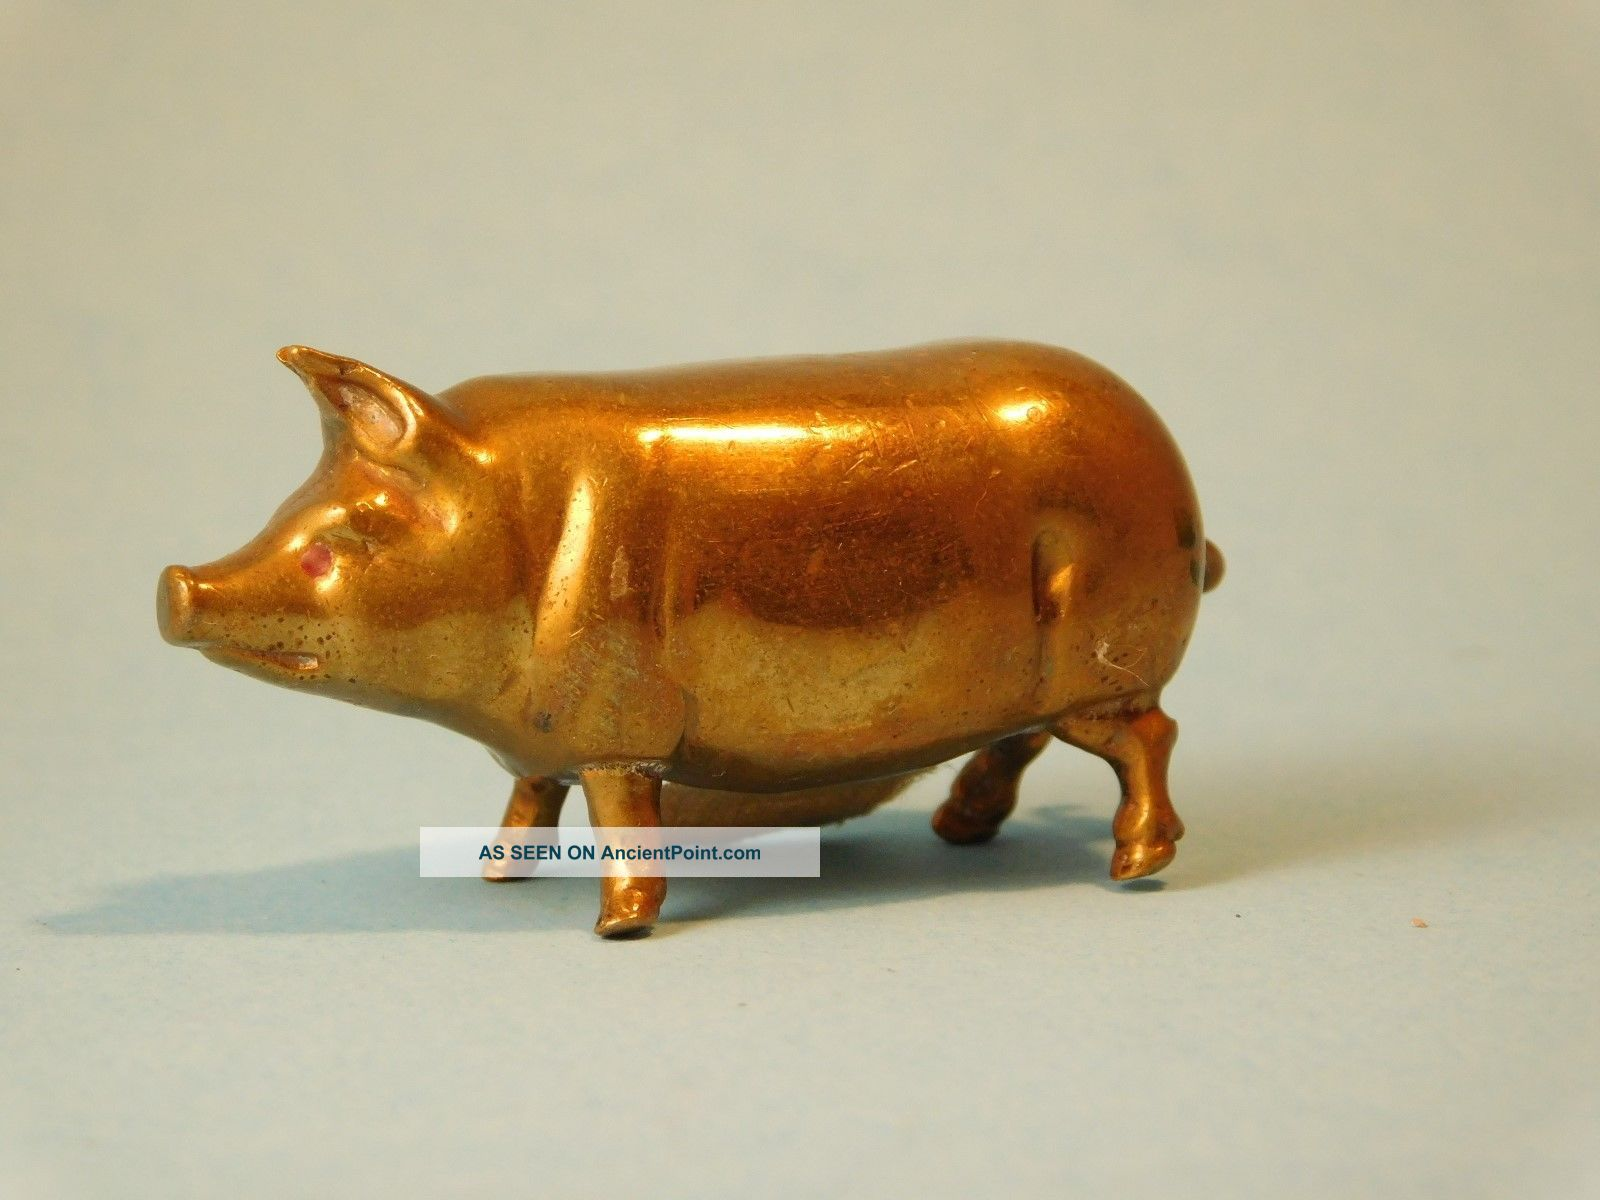 Antique Figural Brass Pig Turning Tail Sewing Fabric Tape Measure Other Antique Sewing photo